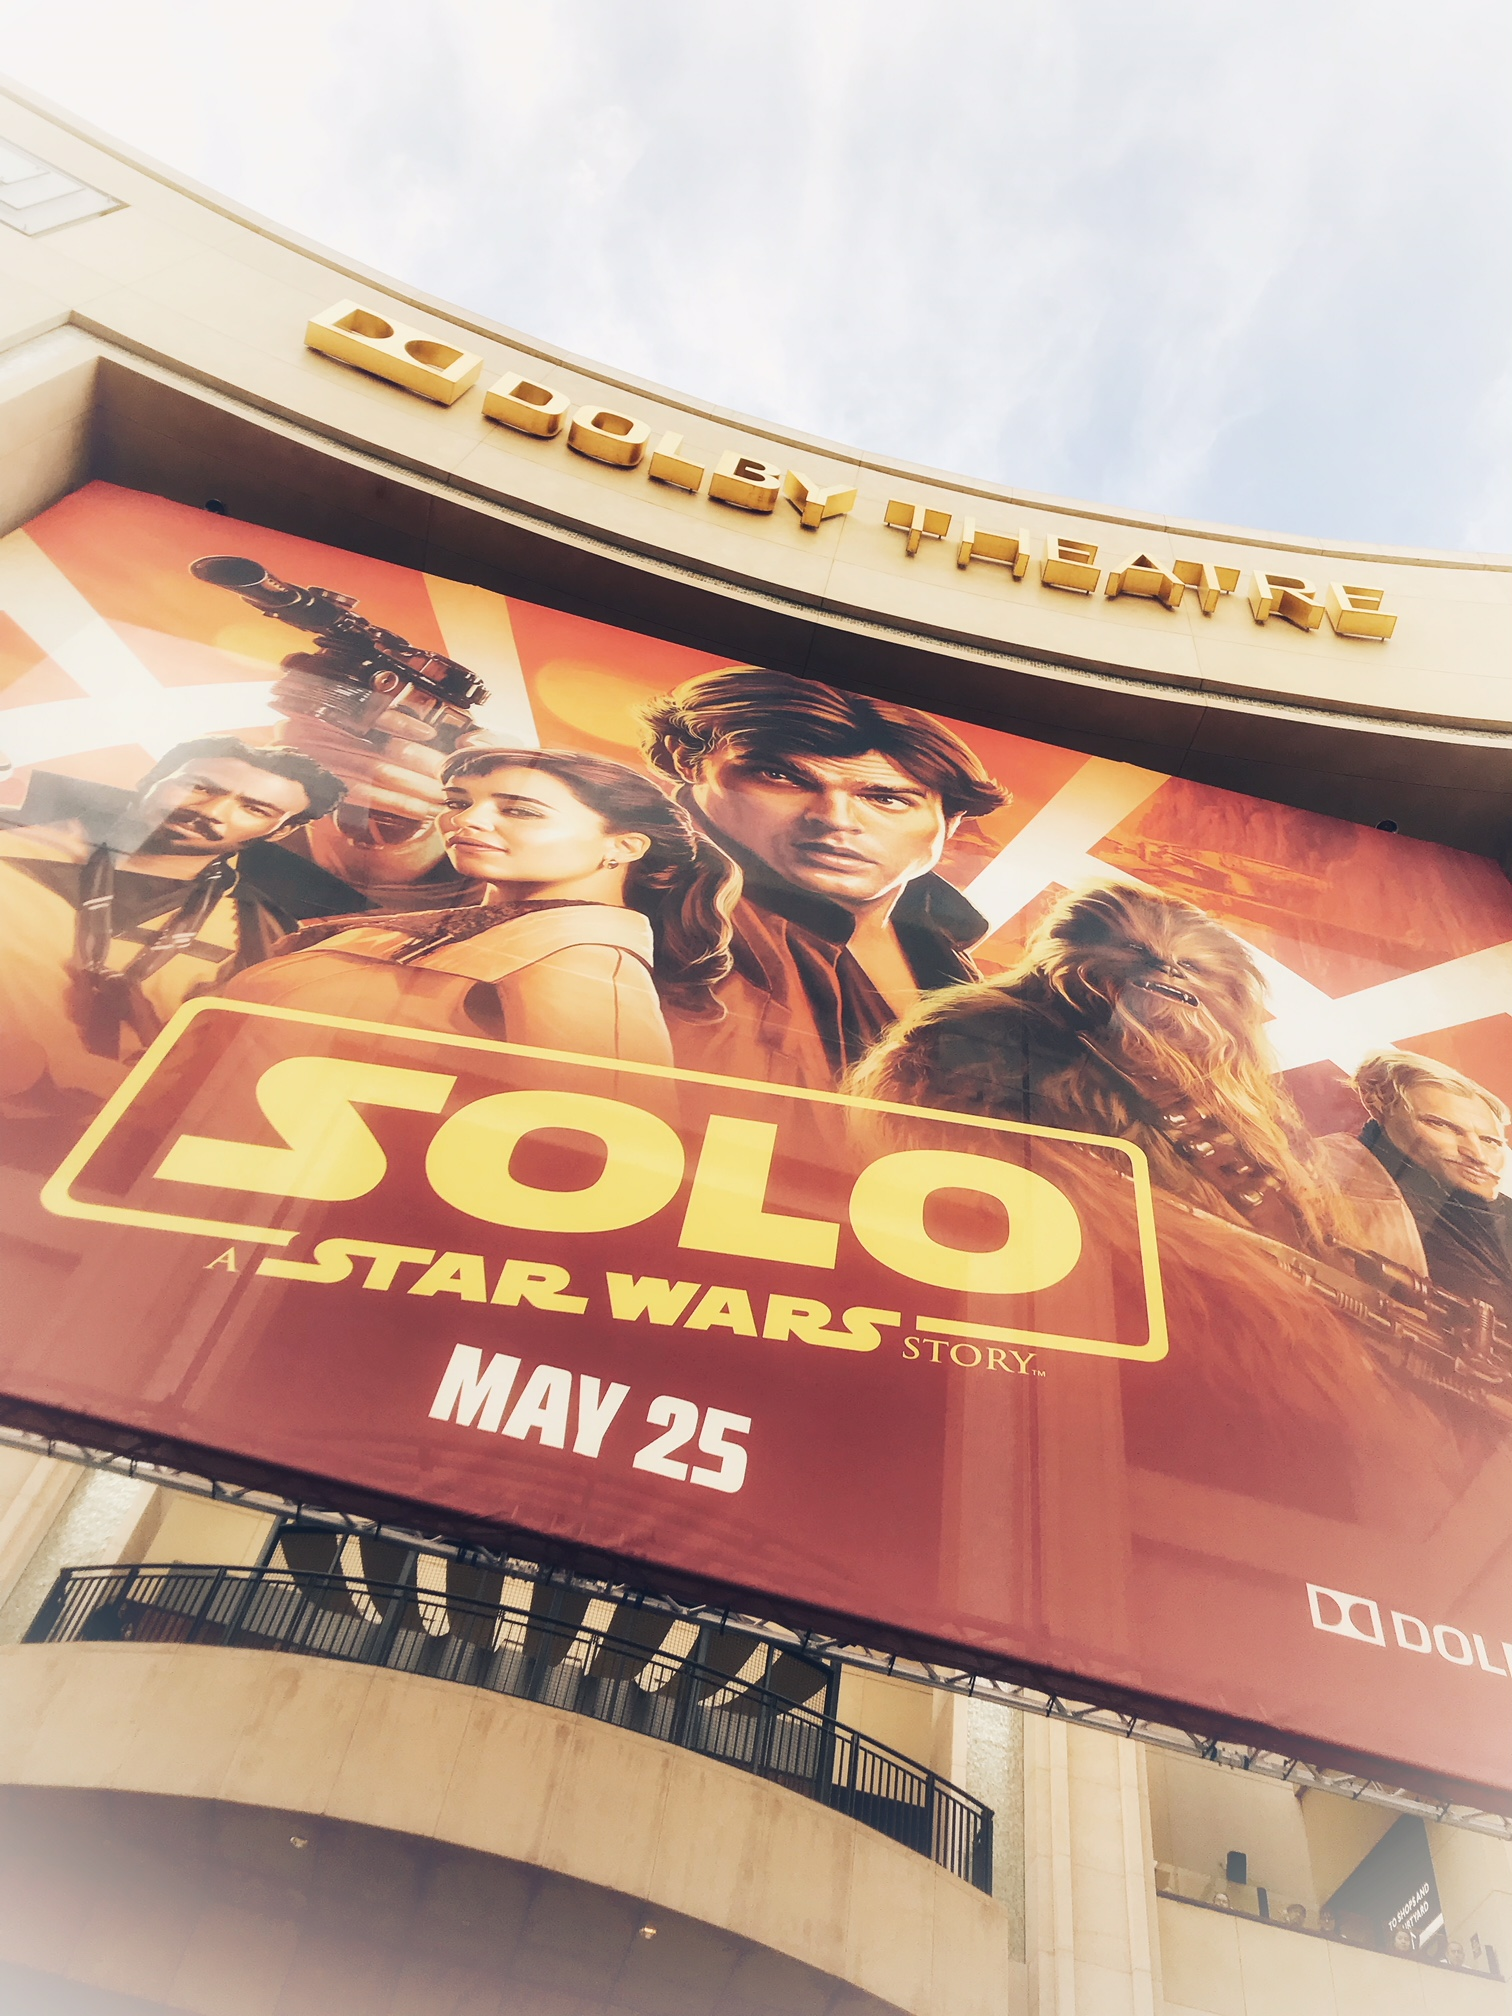 Solo-A Star Wars Story at Dolby Theatre | OC Mom Blog